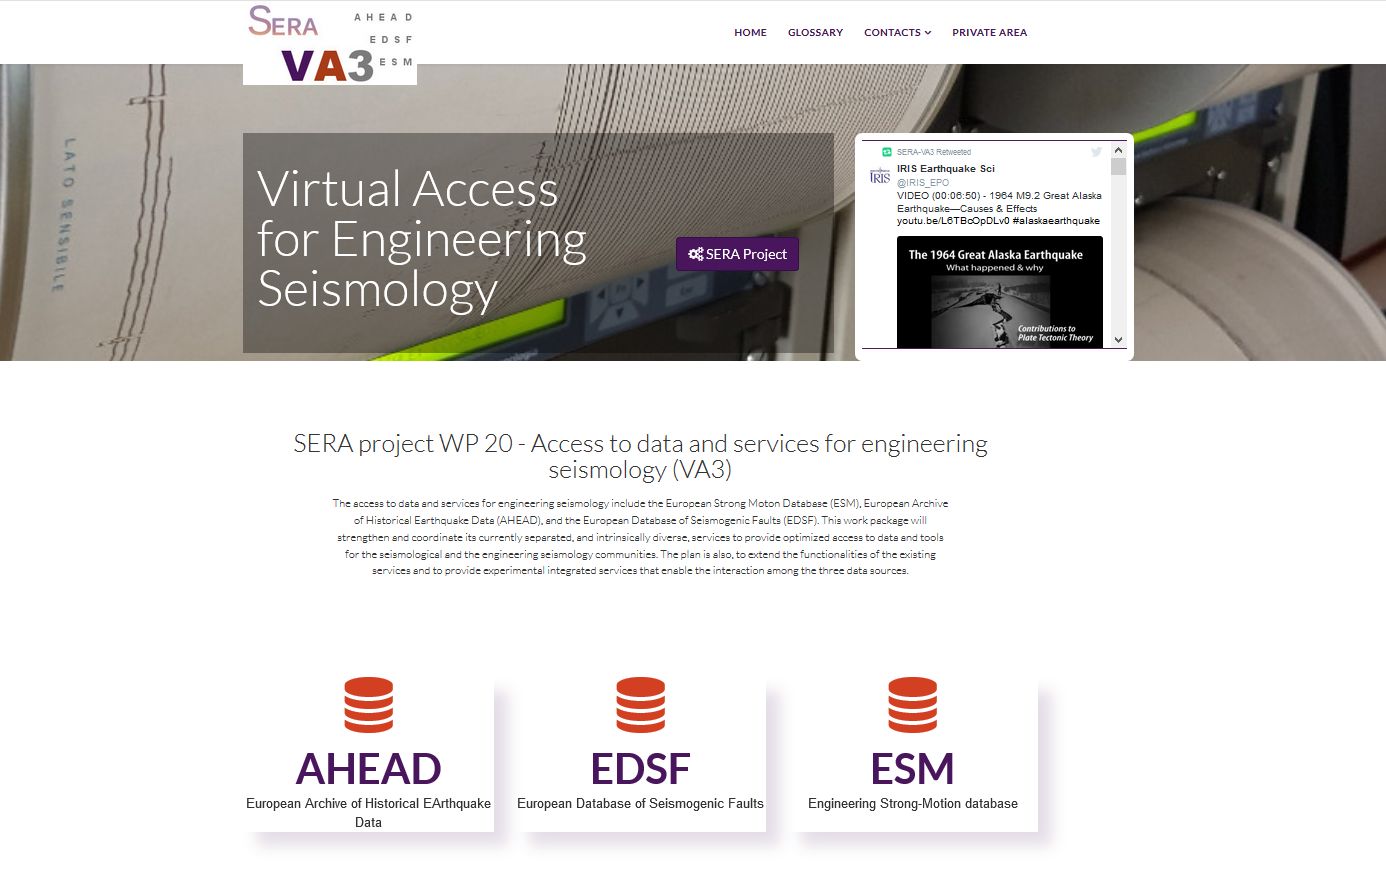 Data and services for engineering seismology portal online